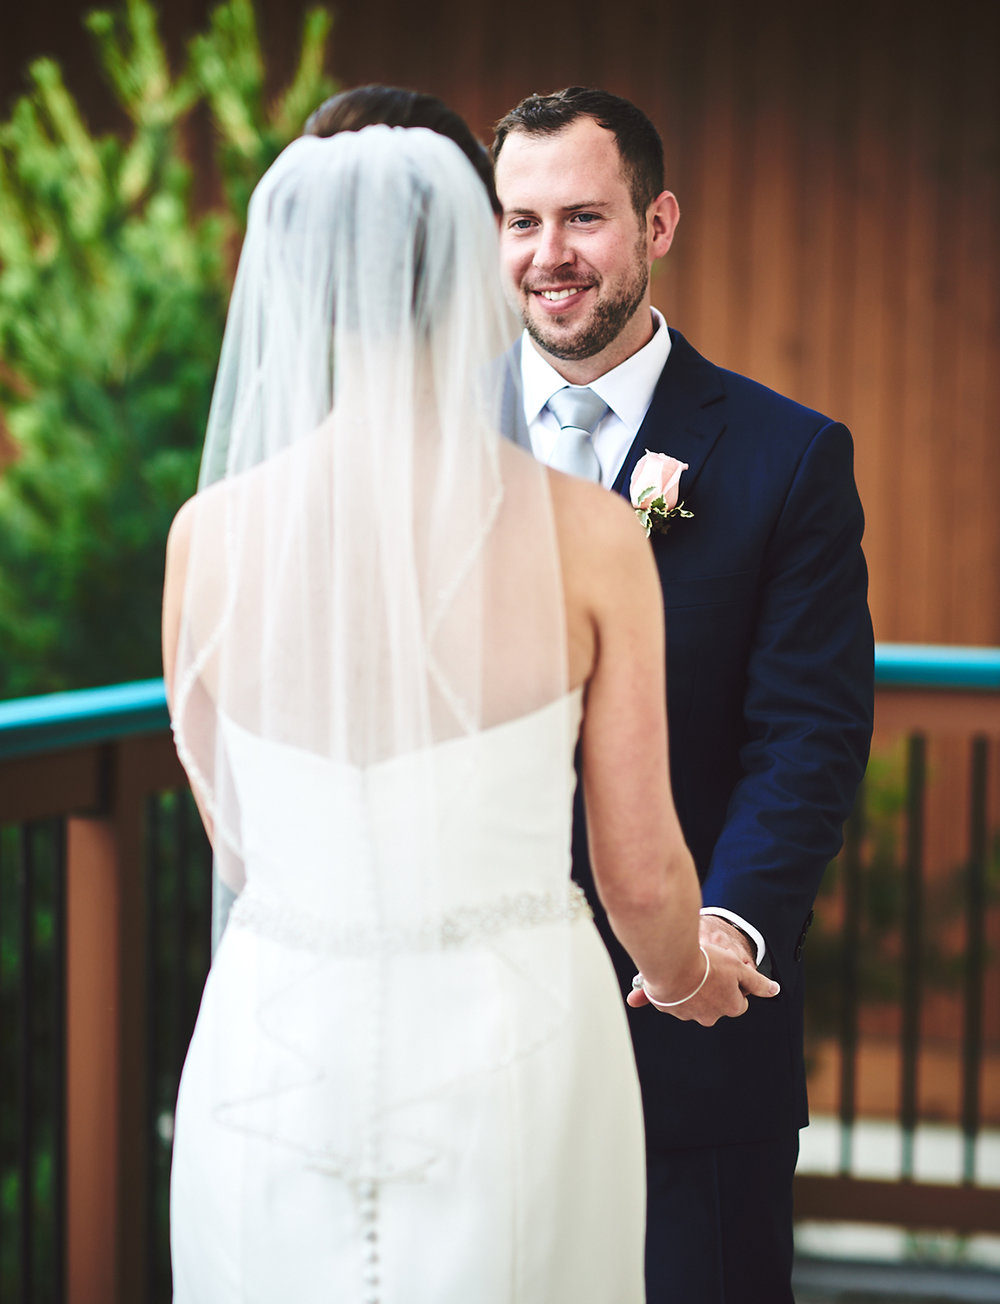 180714_HolidayValleyLodgeWeddingPhotography_By_BriJohnsonWeddings_0041.jpg